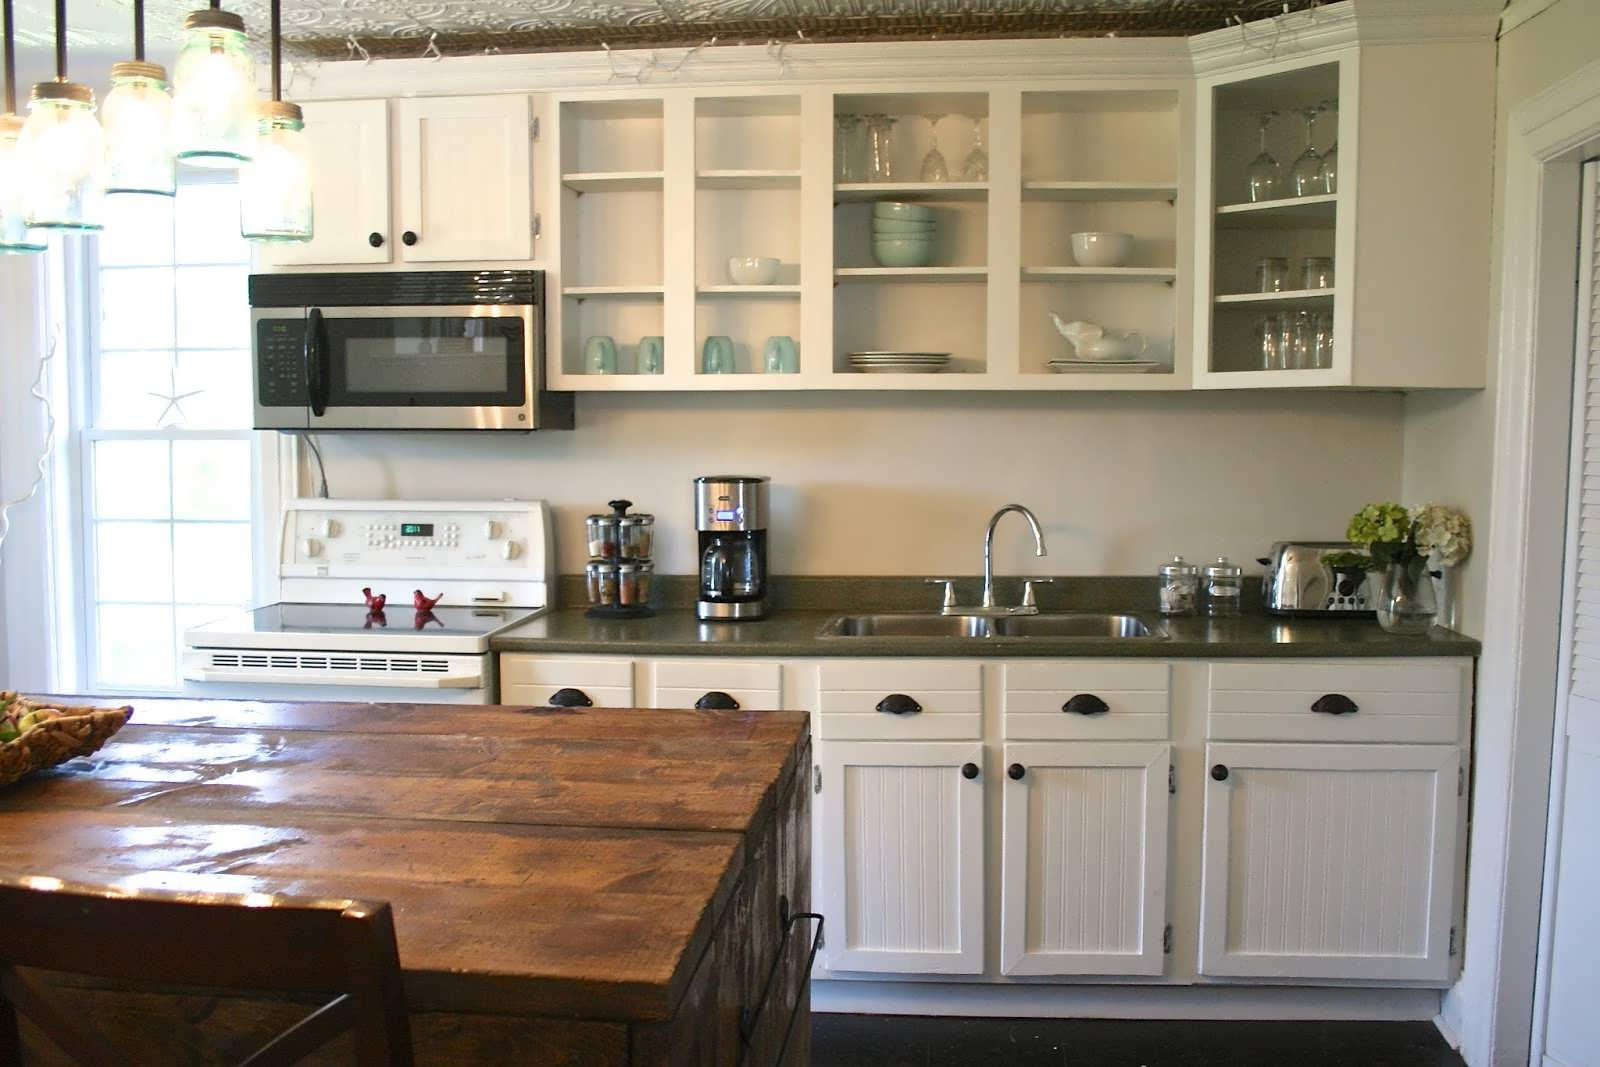 10 Kitchen Cabinet Tips: Older Home Kitchen Remodeling Ideas